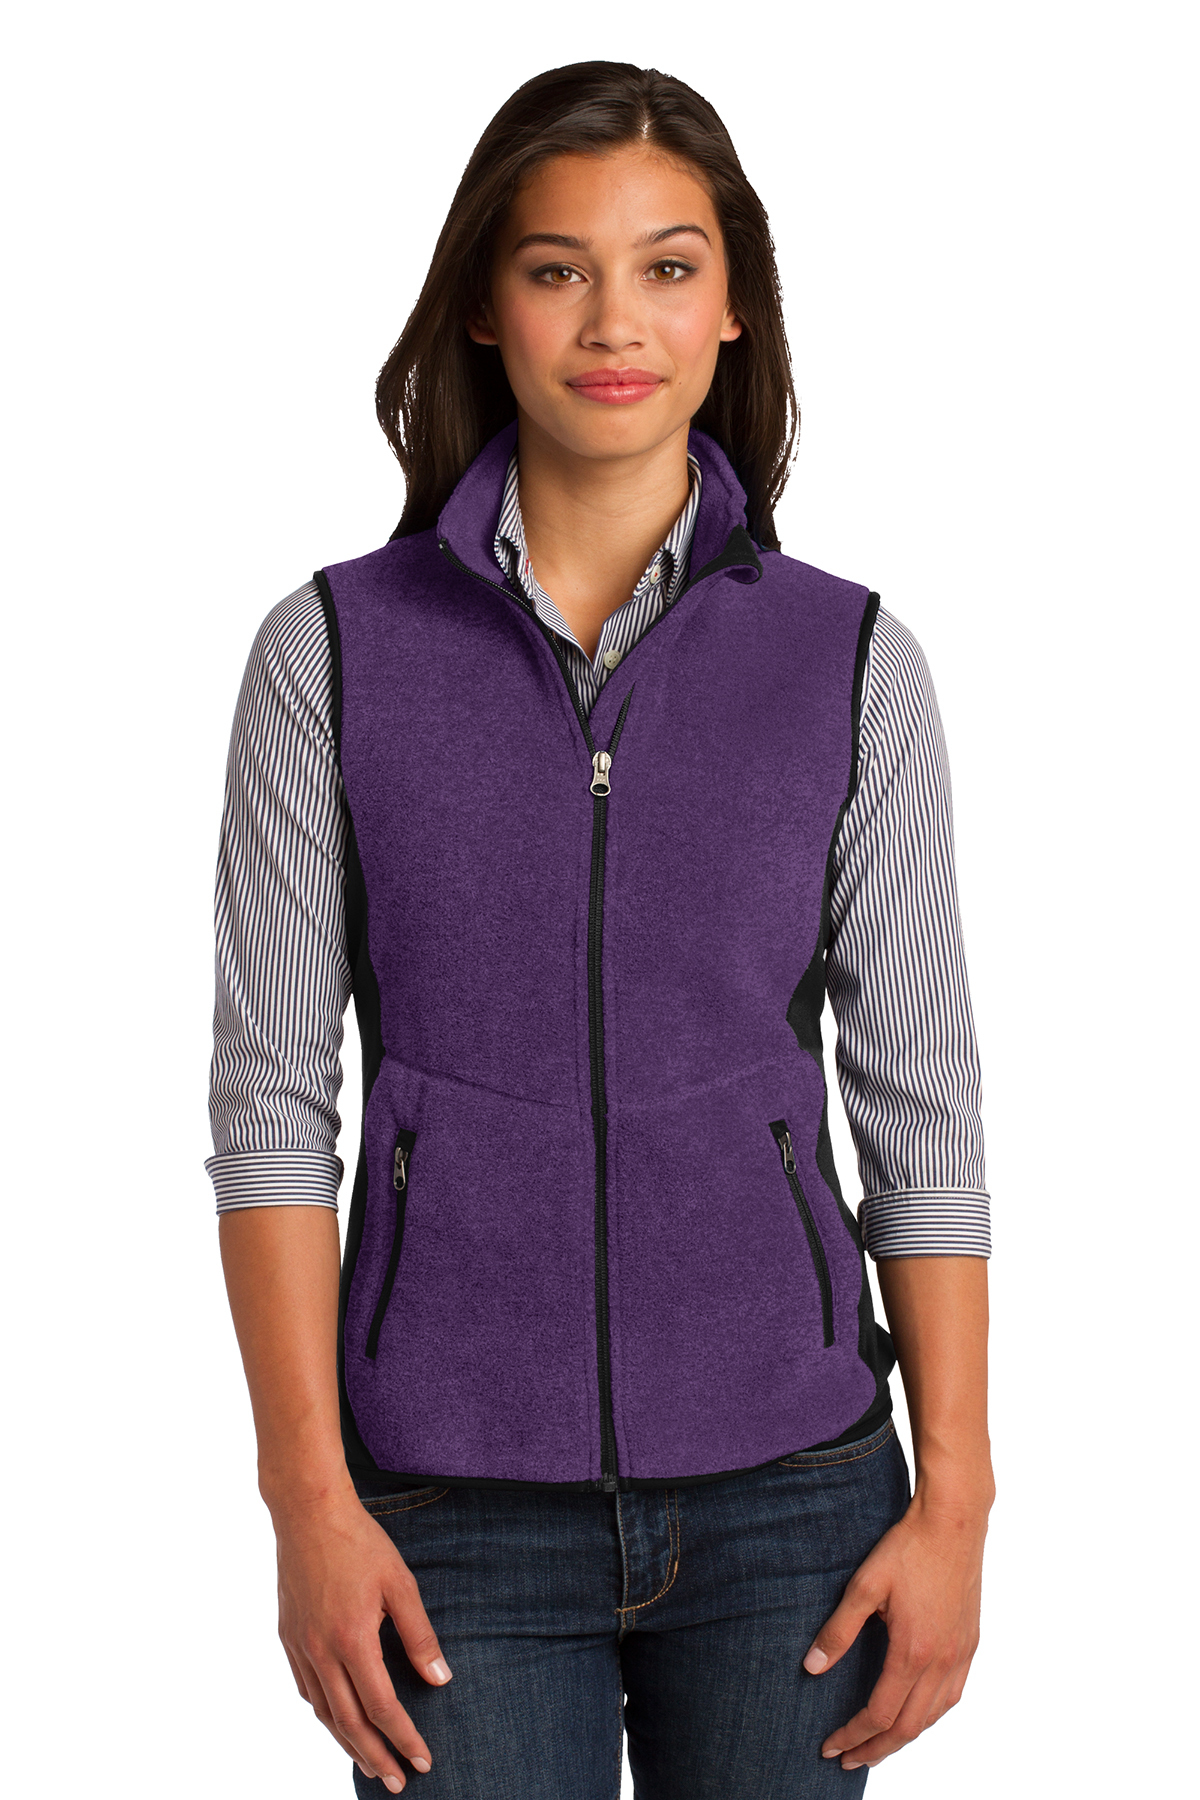 click to view Purple Heather/ Black